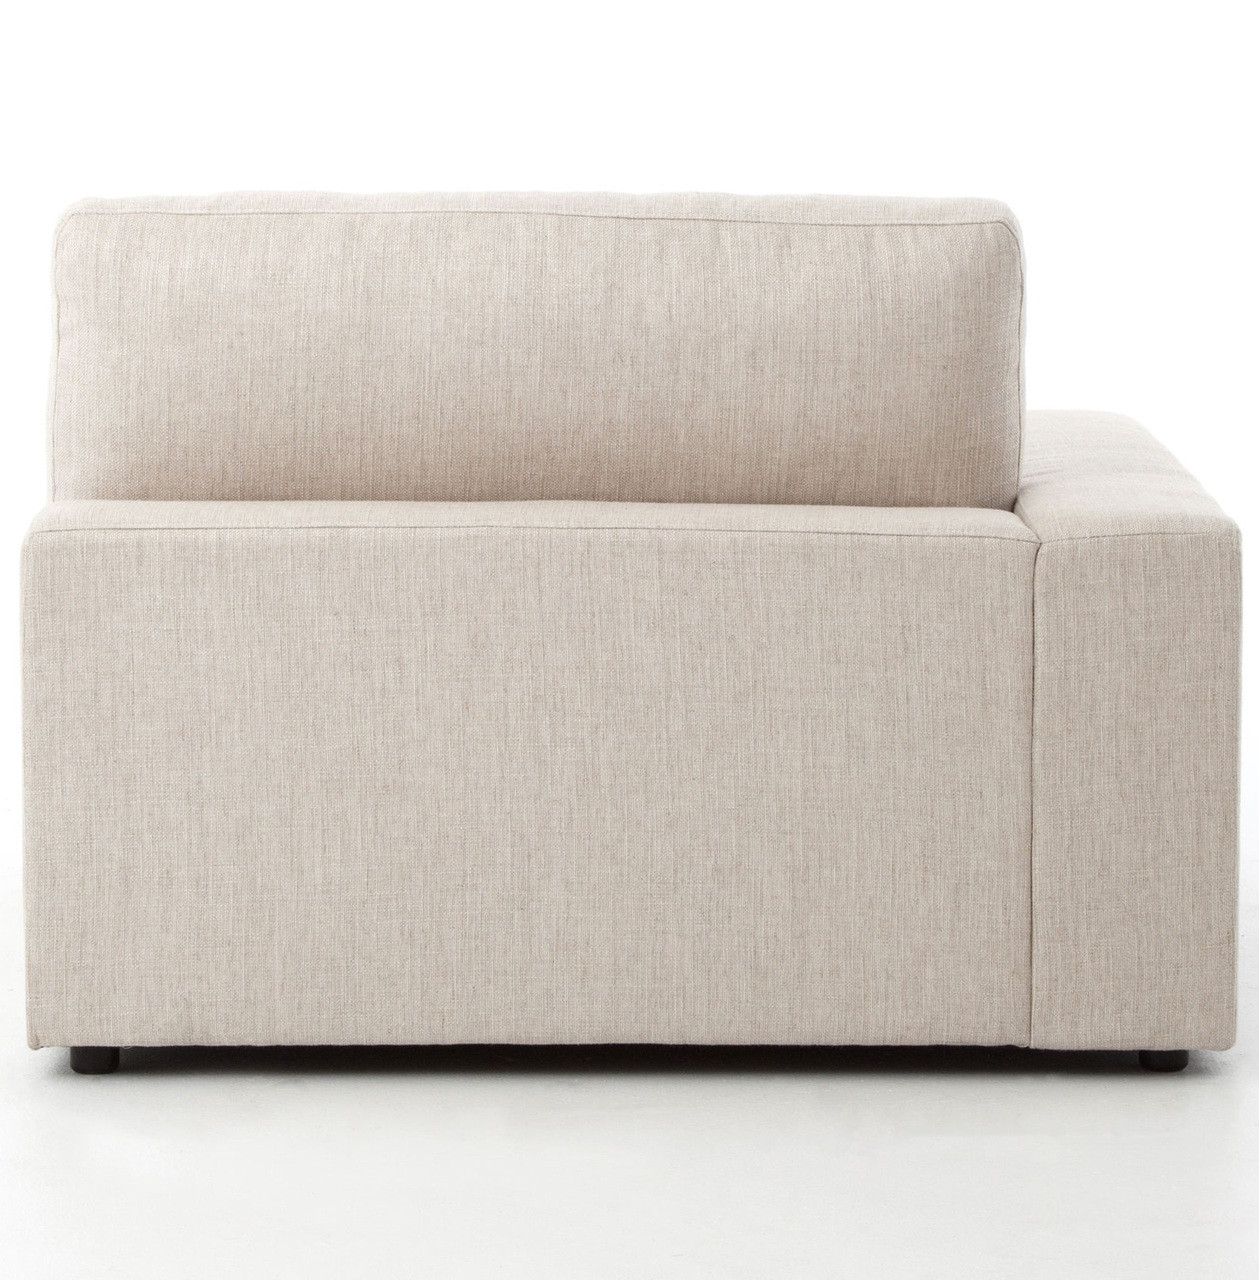 Small Modern Sectional Sofa: Bloor Beige Contemporary 3 Piece Small Sectional Sofa